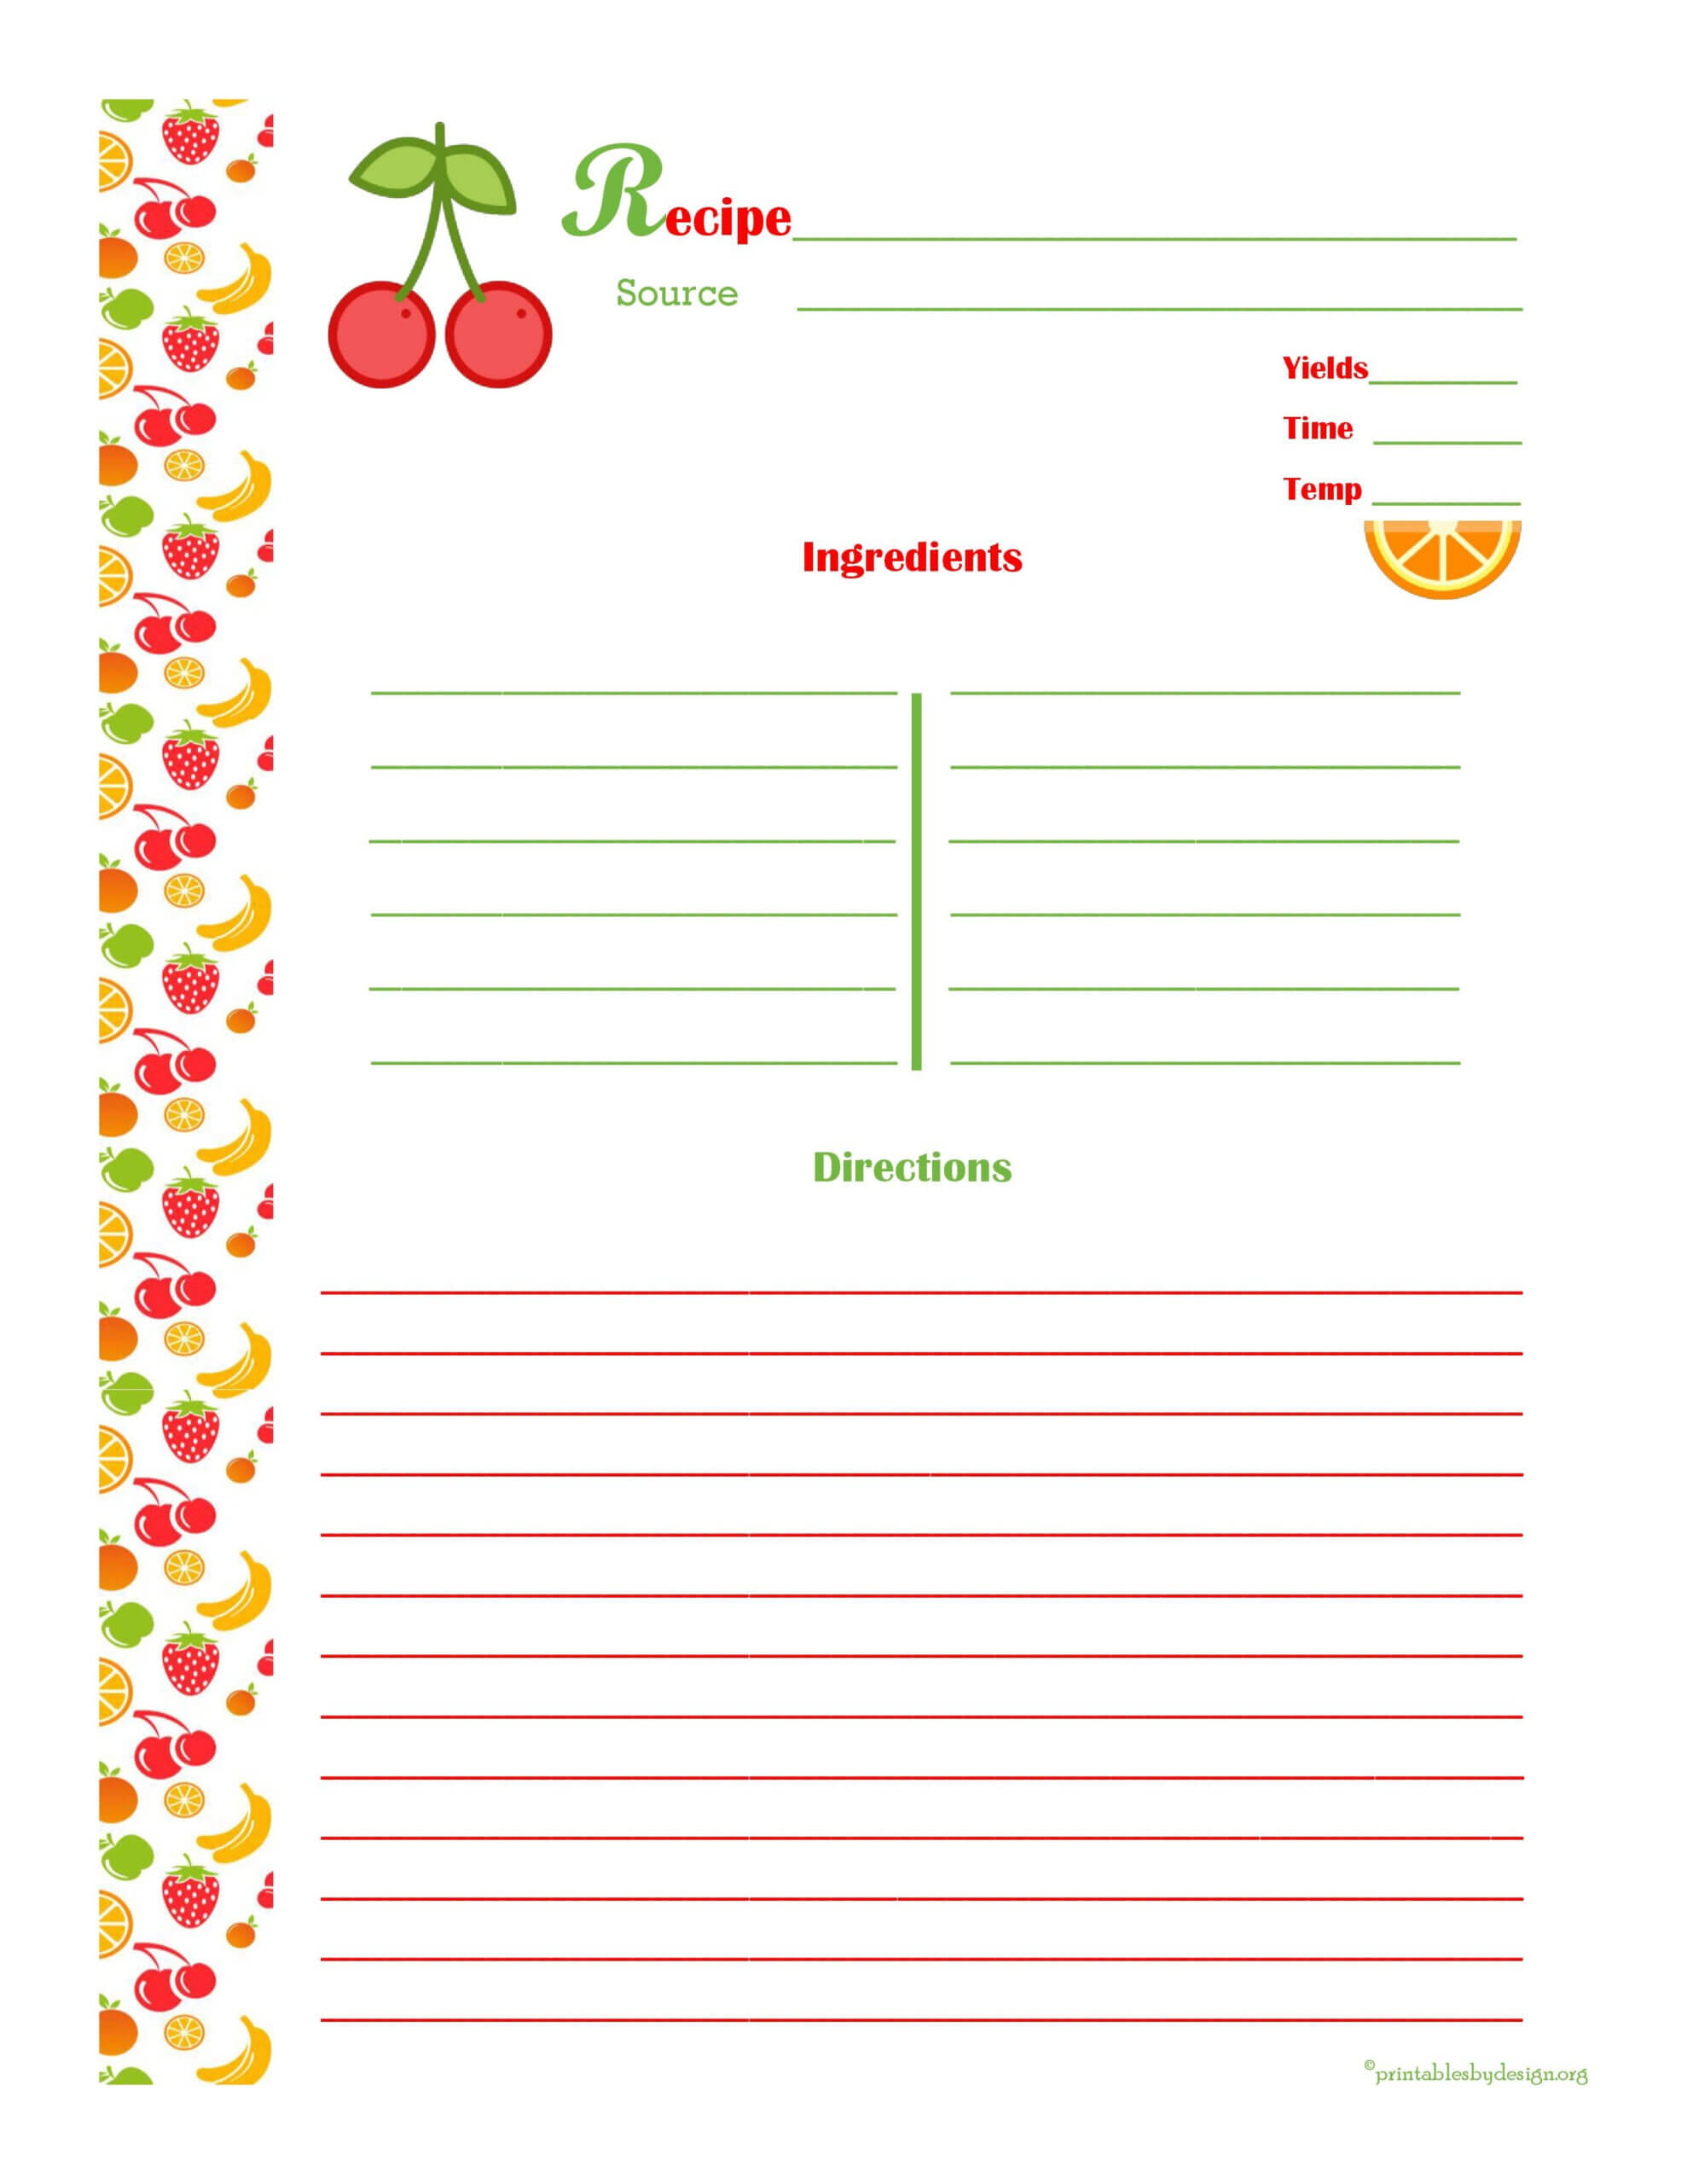 Cherry & Orange Recipe Card - Full Page | Printable Recipe For Microsoft Word Recipe Card Template